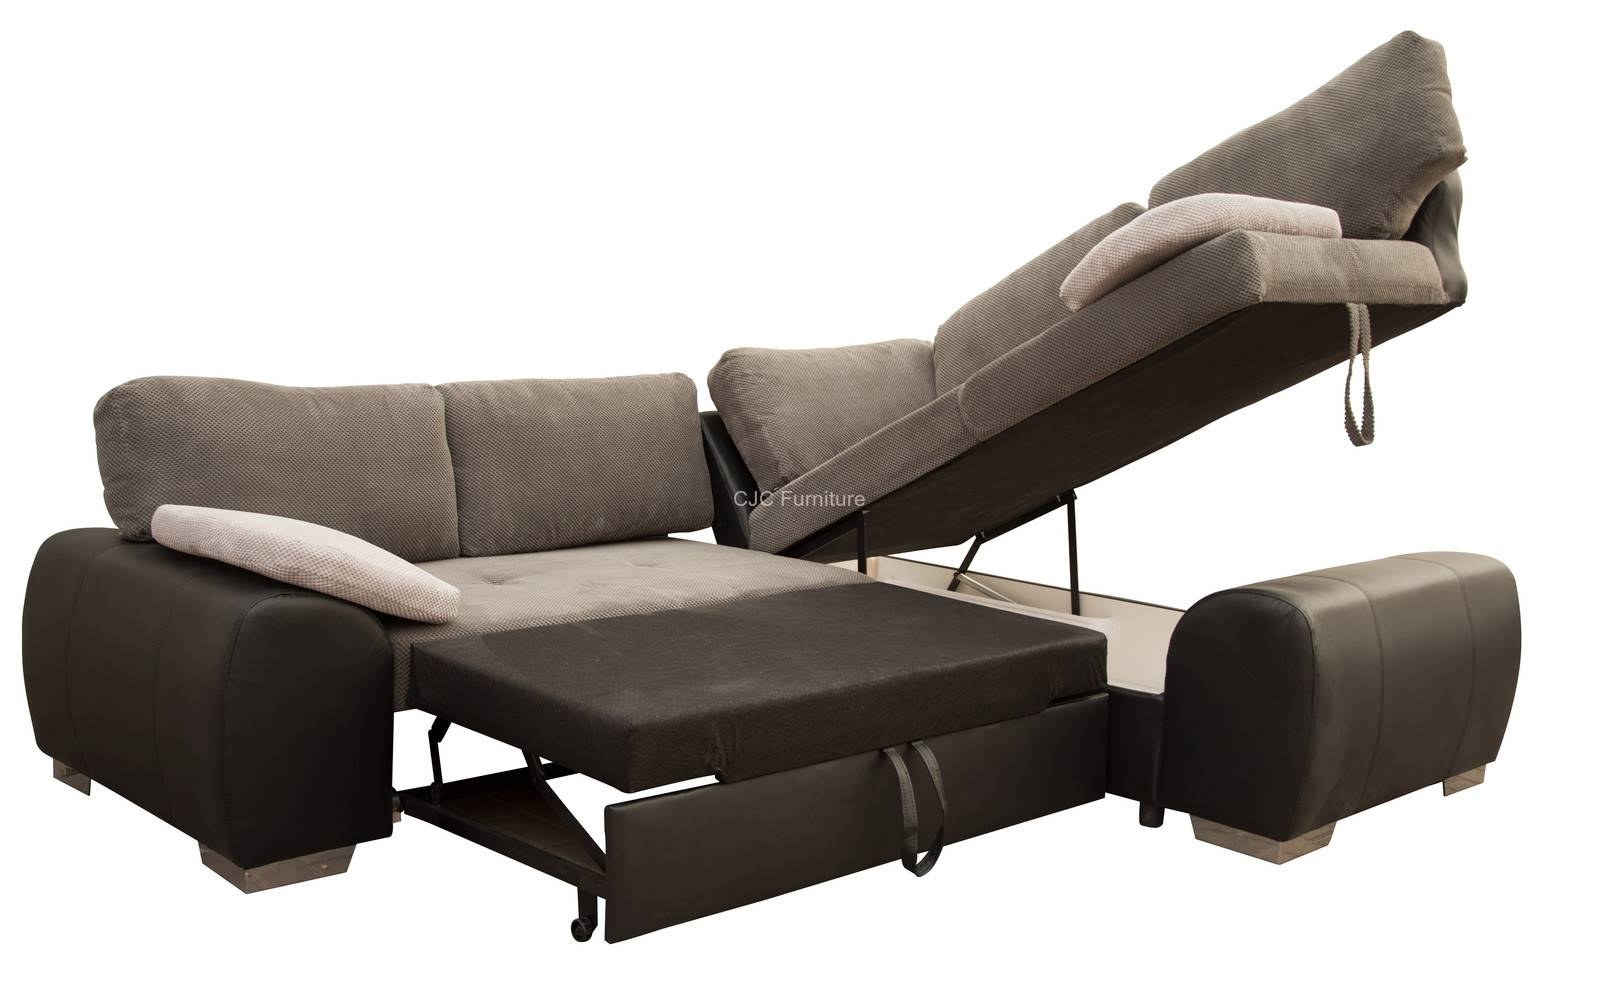 Birmingham Furniture - Cjcfurniture.co.uk Corner Sofa Beds with regard to Chaise Longue Sofa Beds (Image 4 of 15)